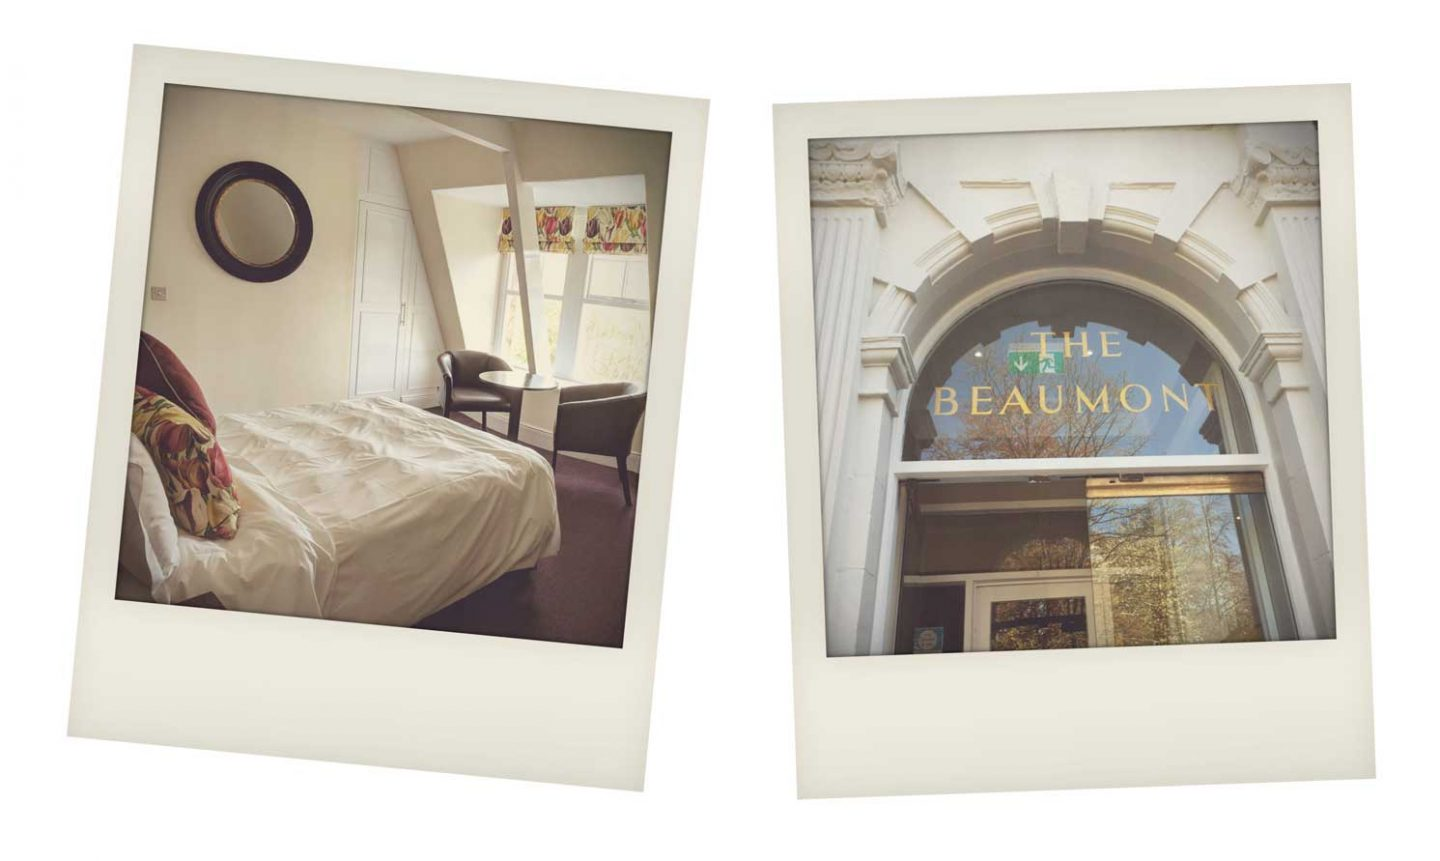 A Short Break in Northumberland - The Beaumont Hotel